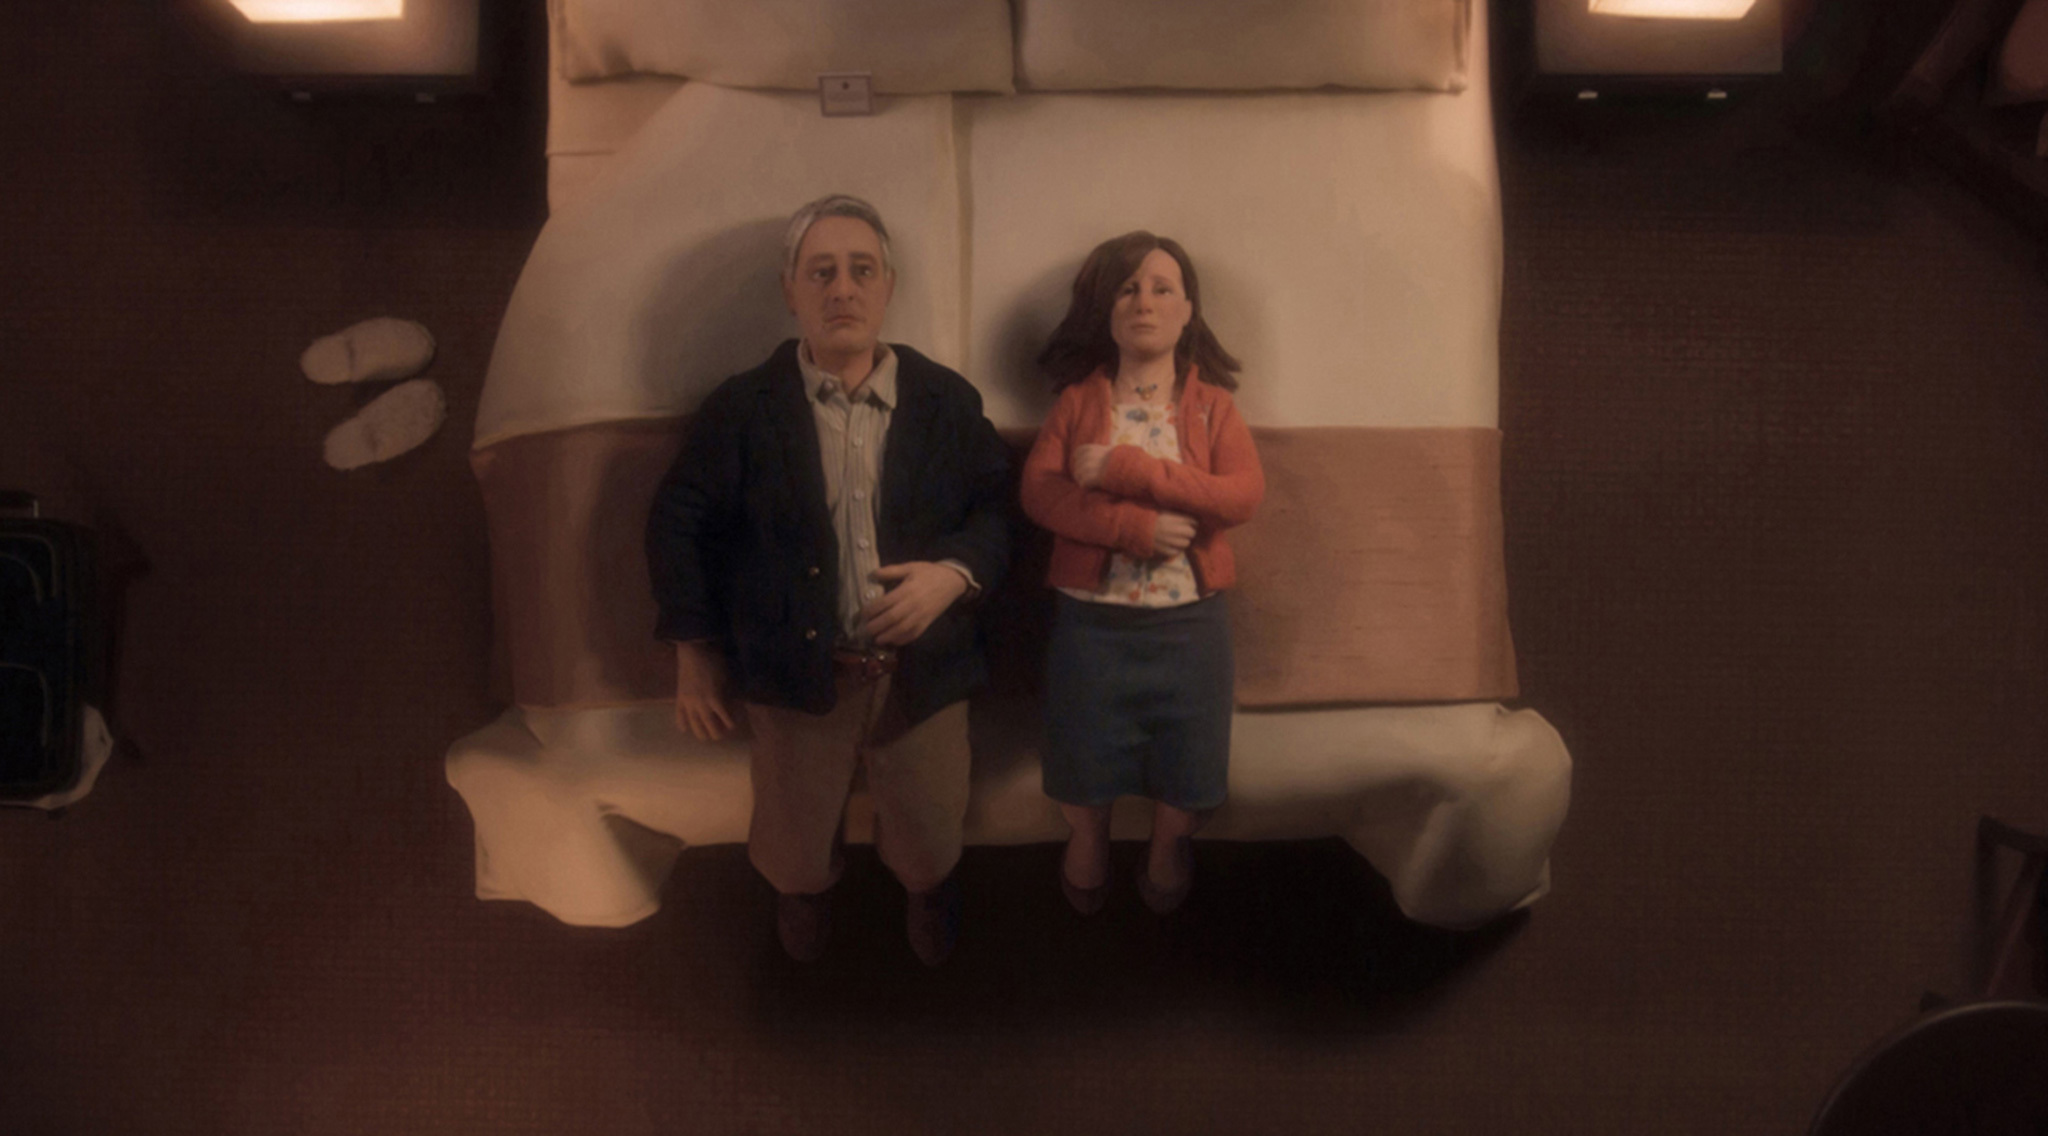 Five animated sex scenes - 'Anomalisa'